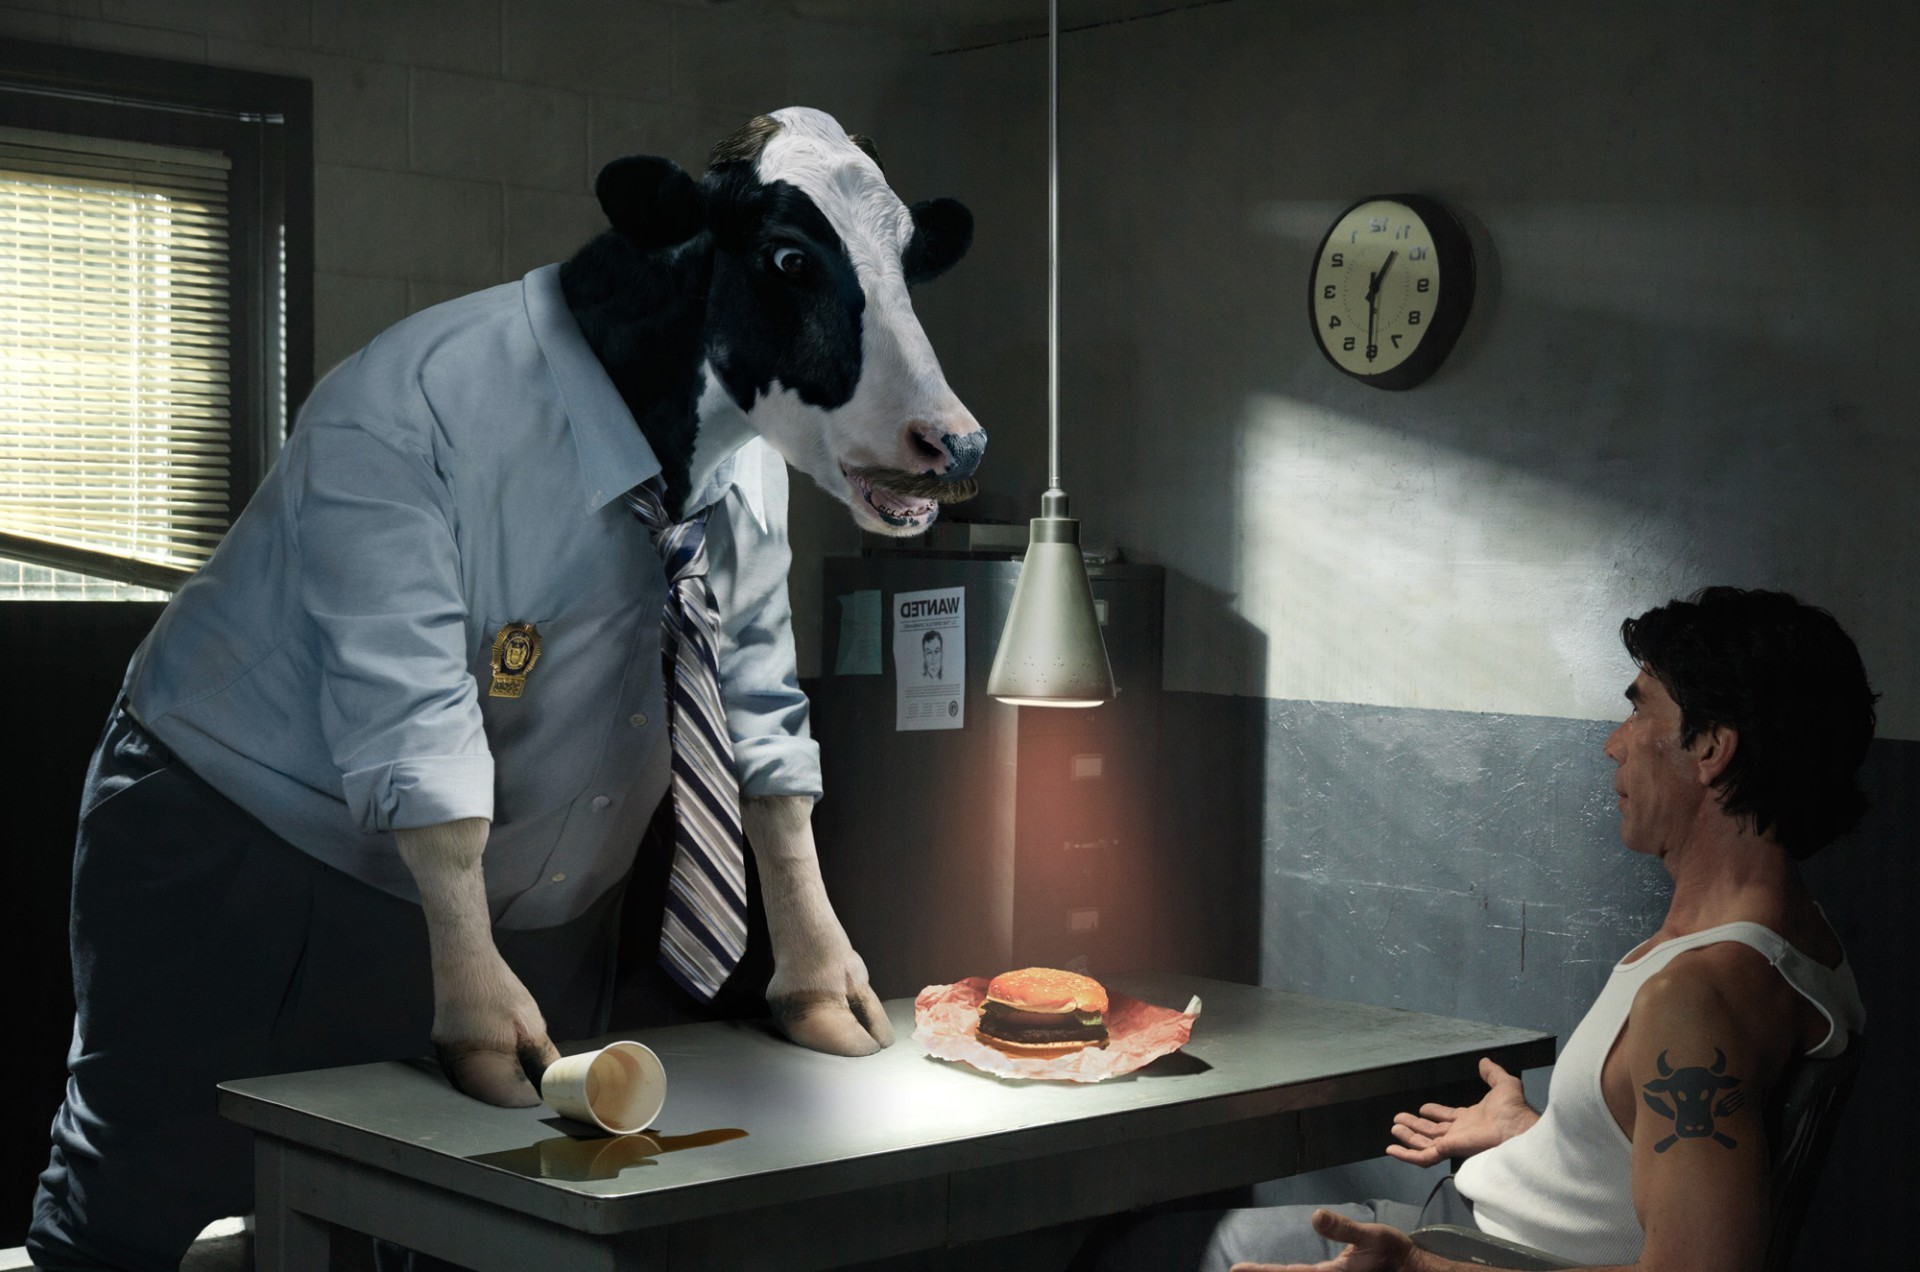 Police cow is conducting the interrogation